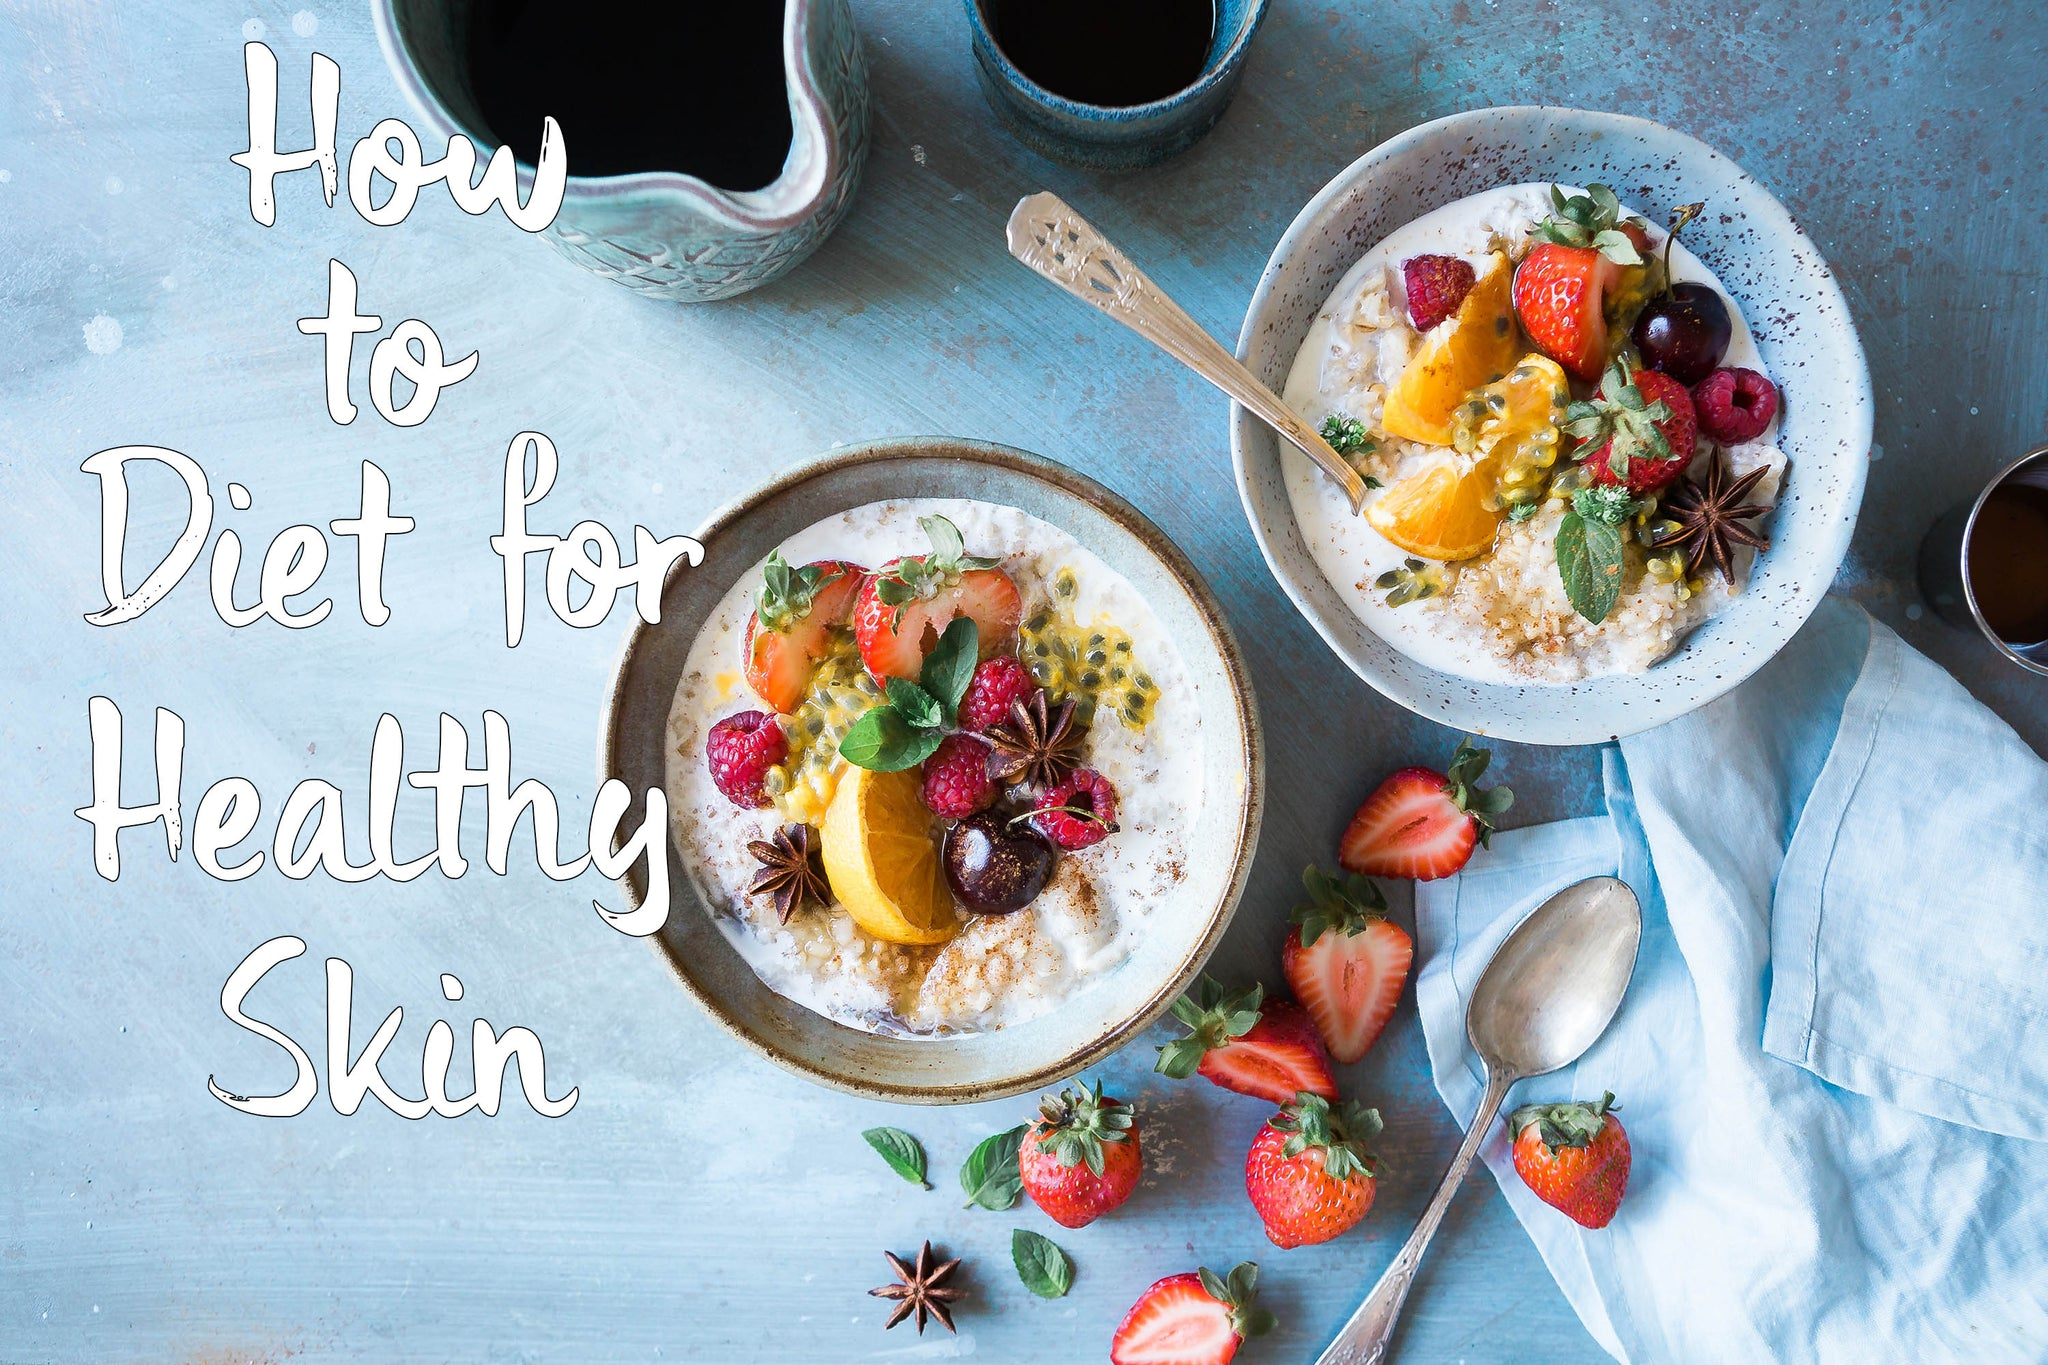 How to Diet for Healthy Skin